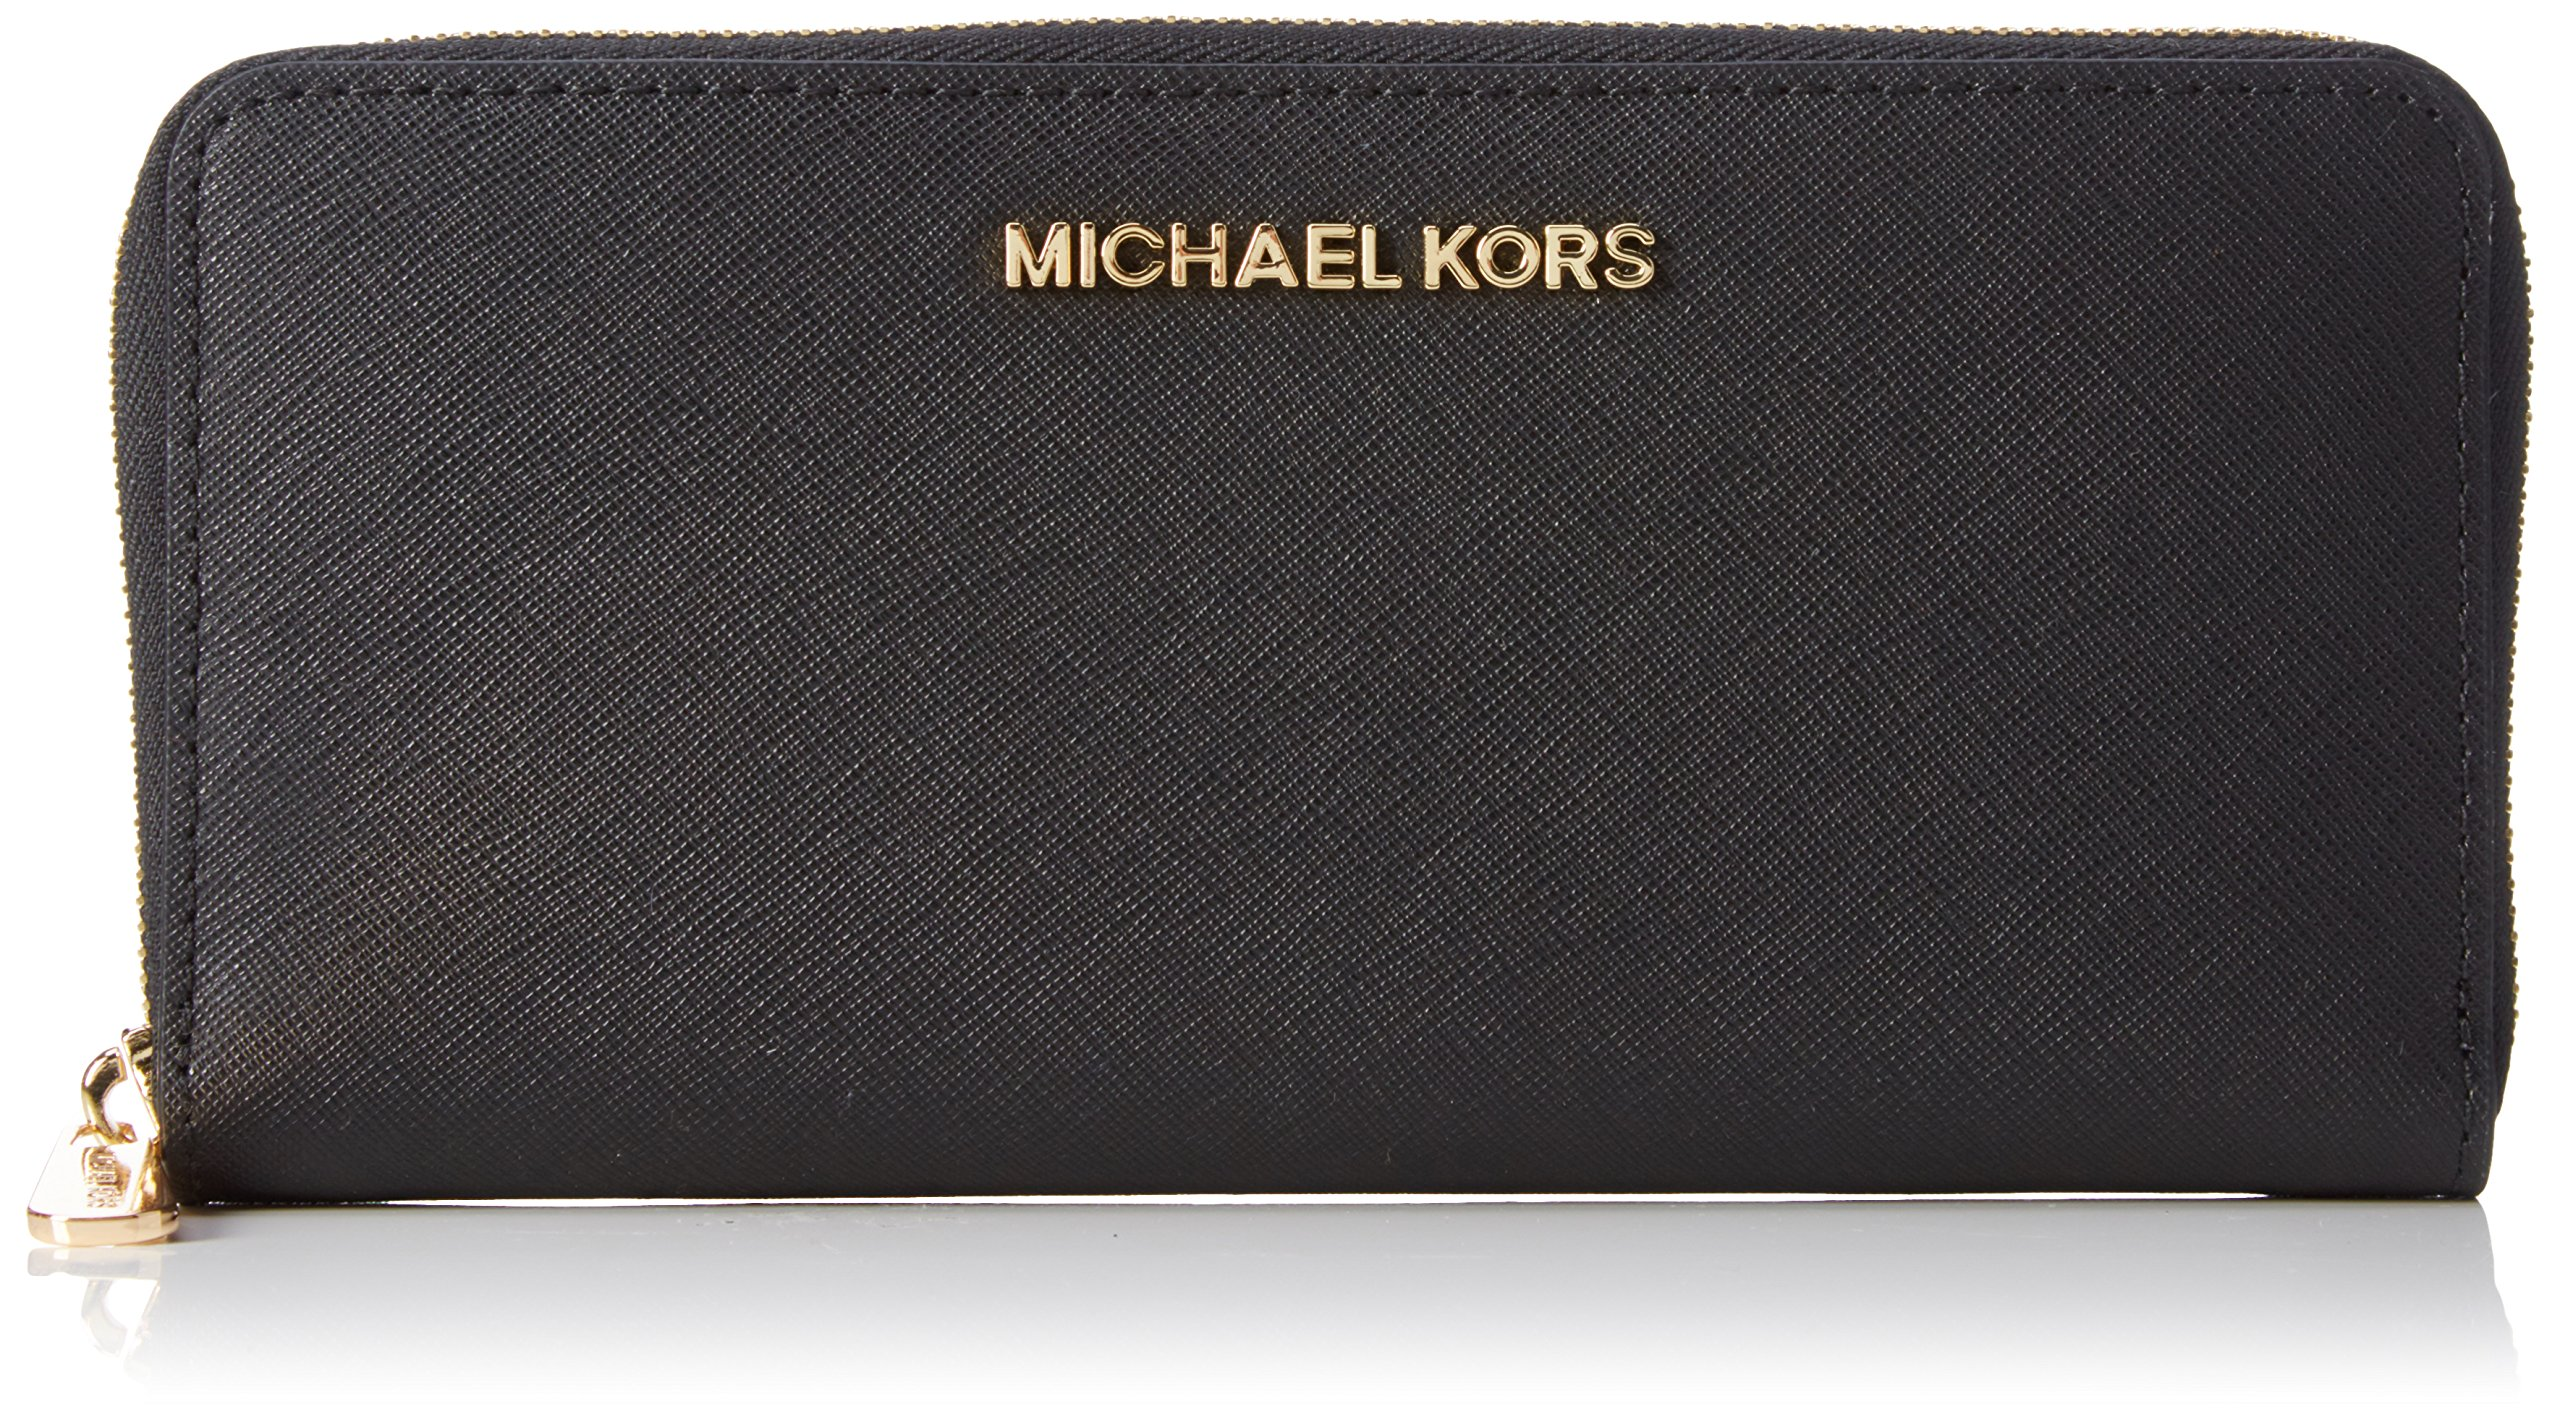 purse michael kors amazon co uk rh amazon co uk